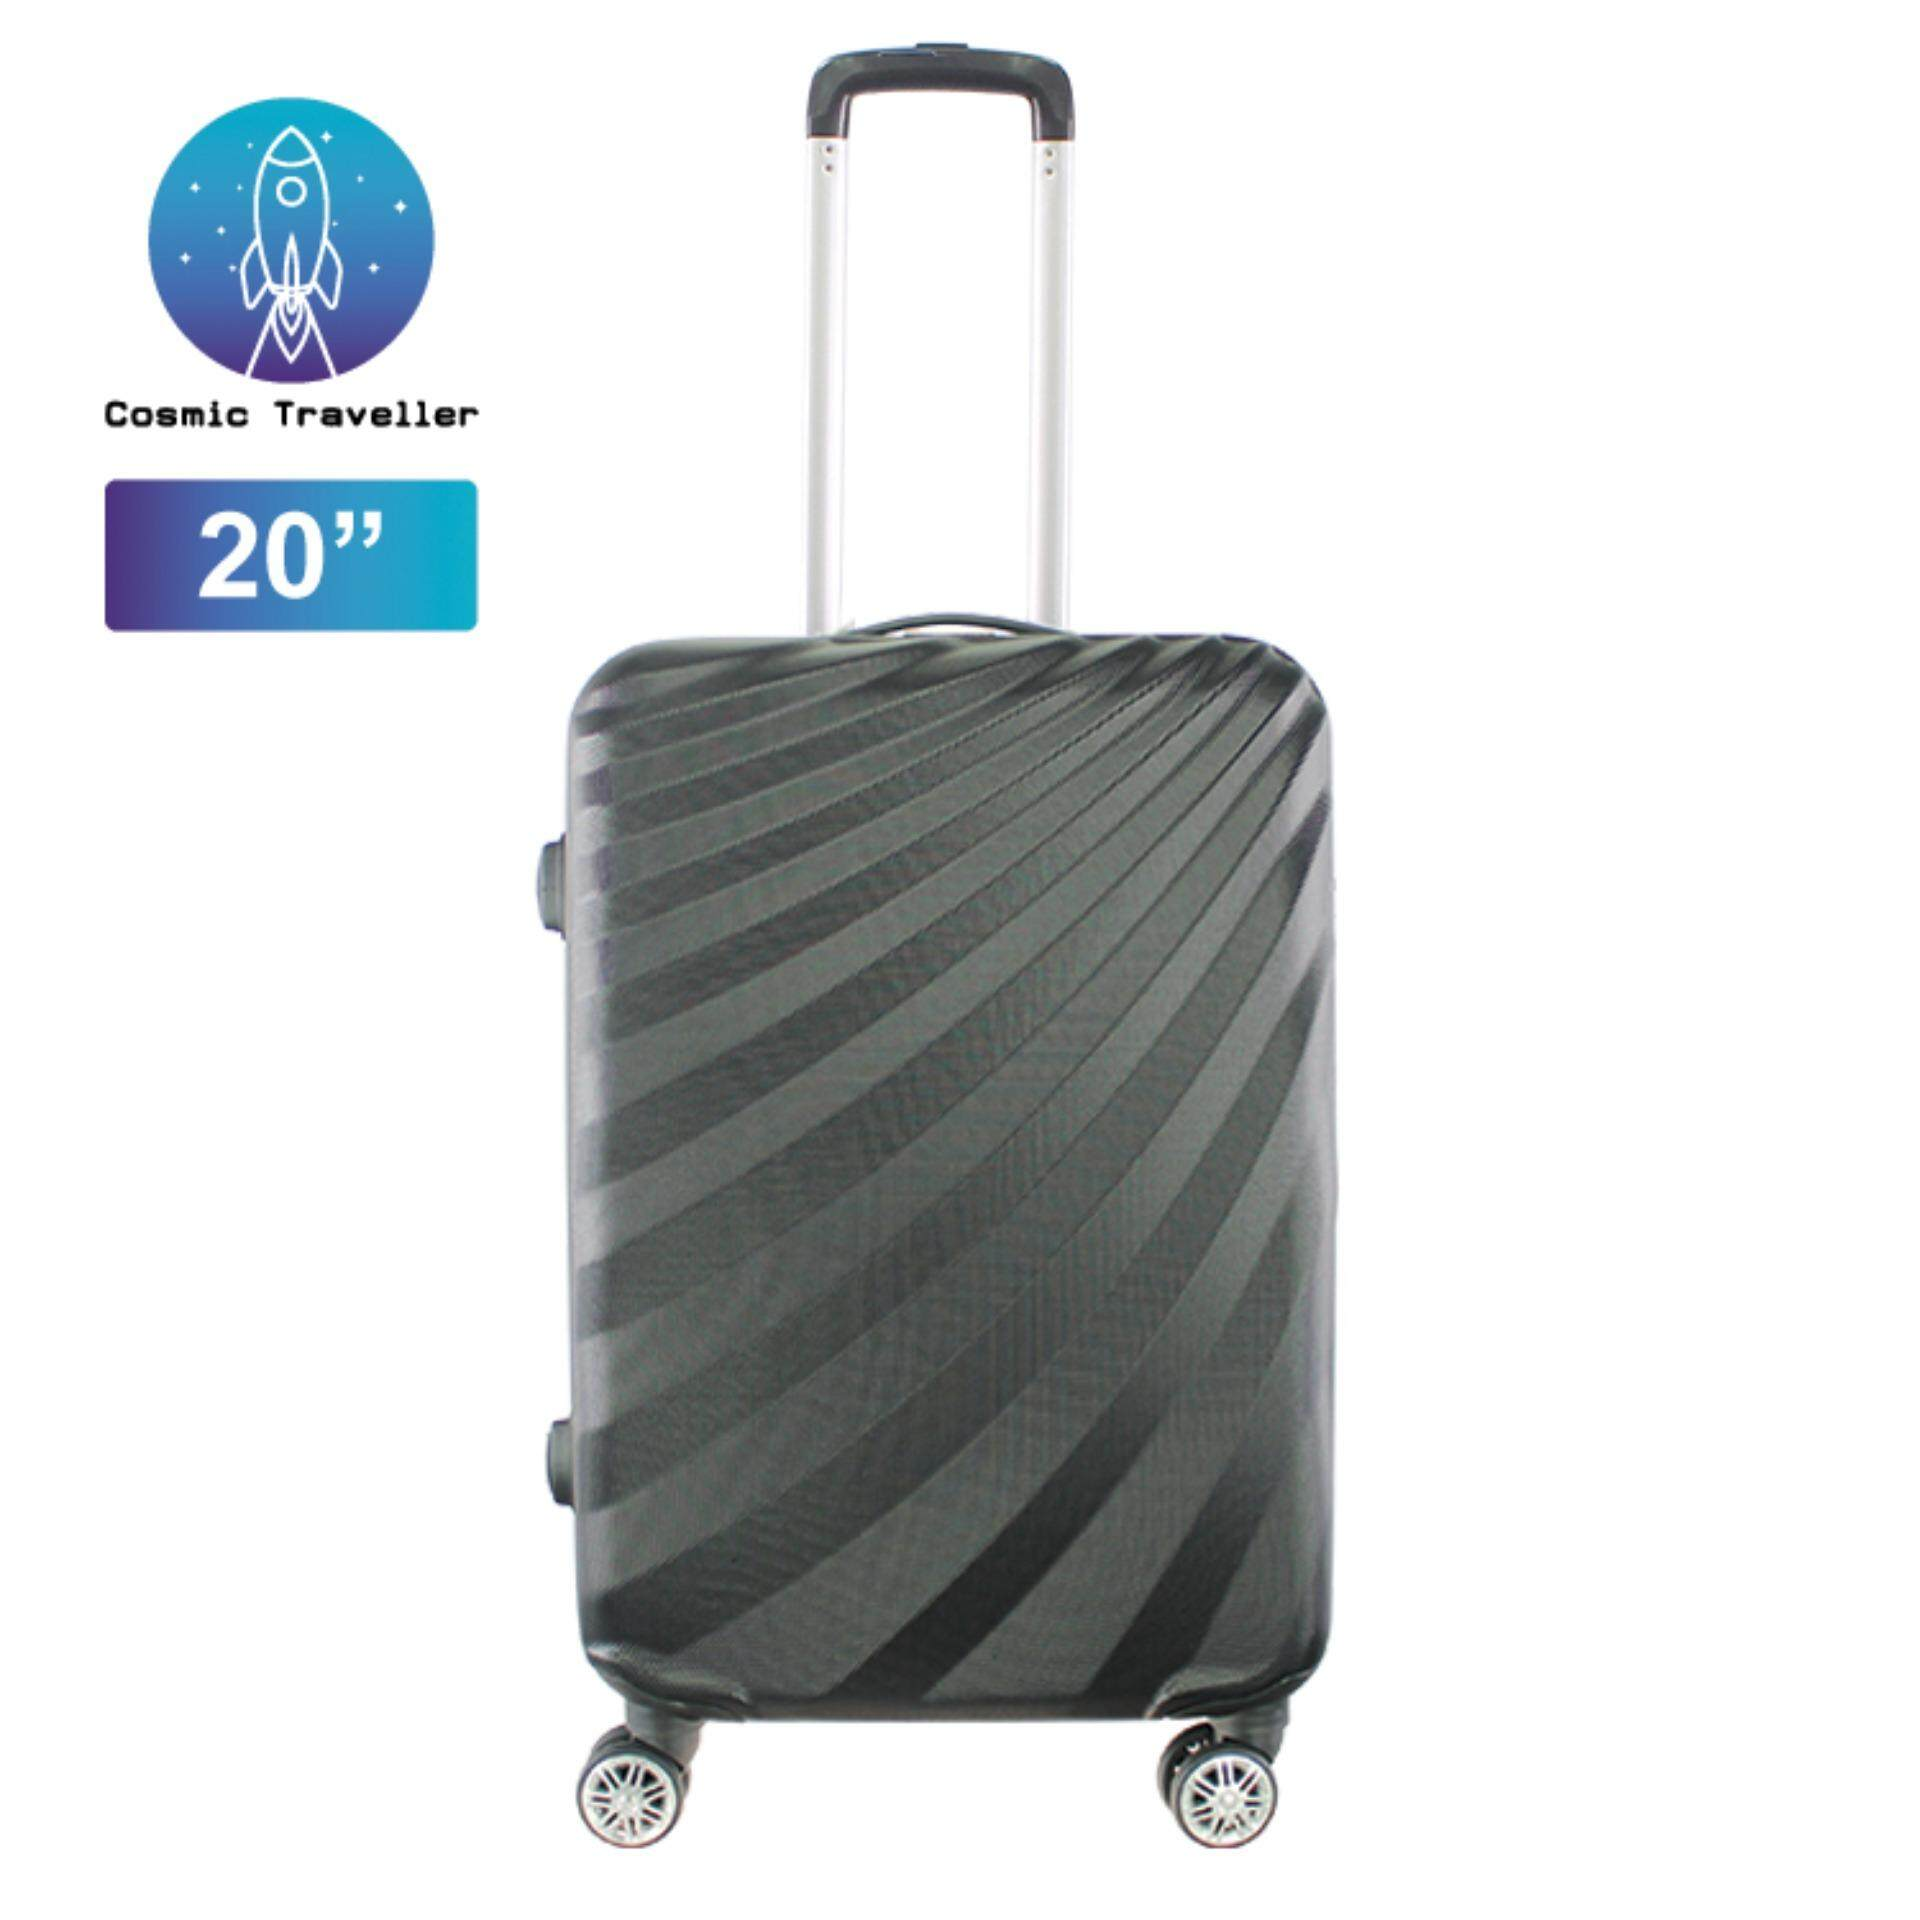 5b0ce7ac4ade Luggage - Buy Luggage at Best Price in Malaysia